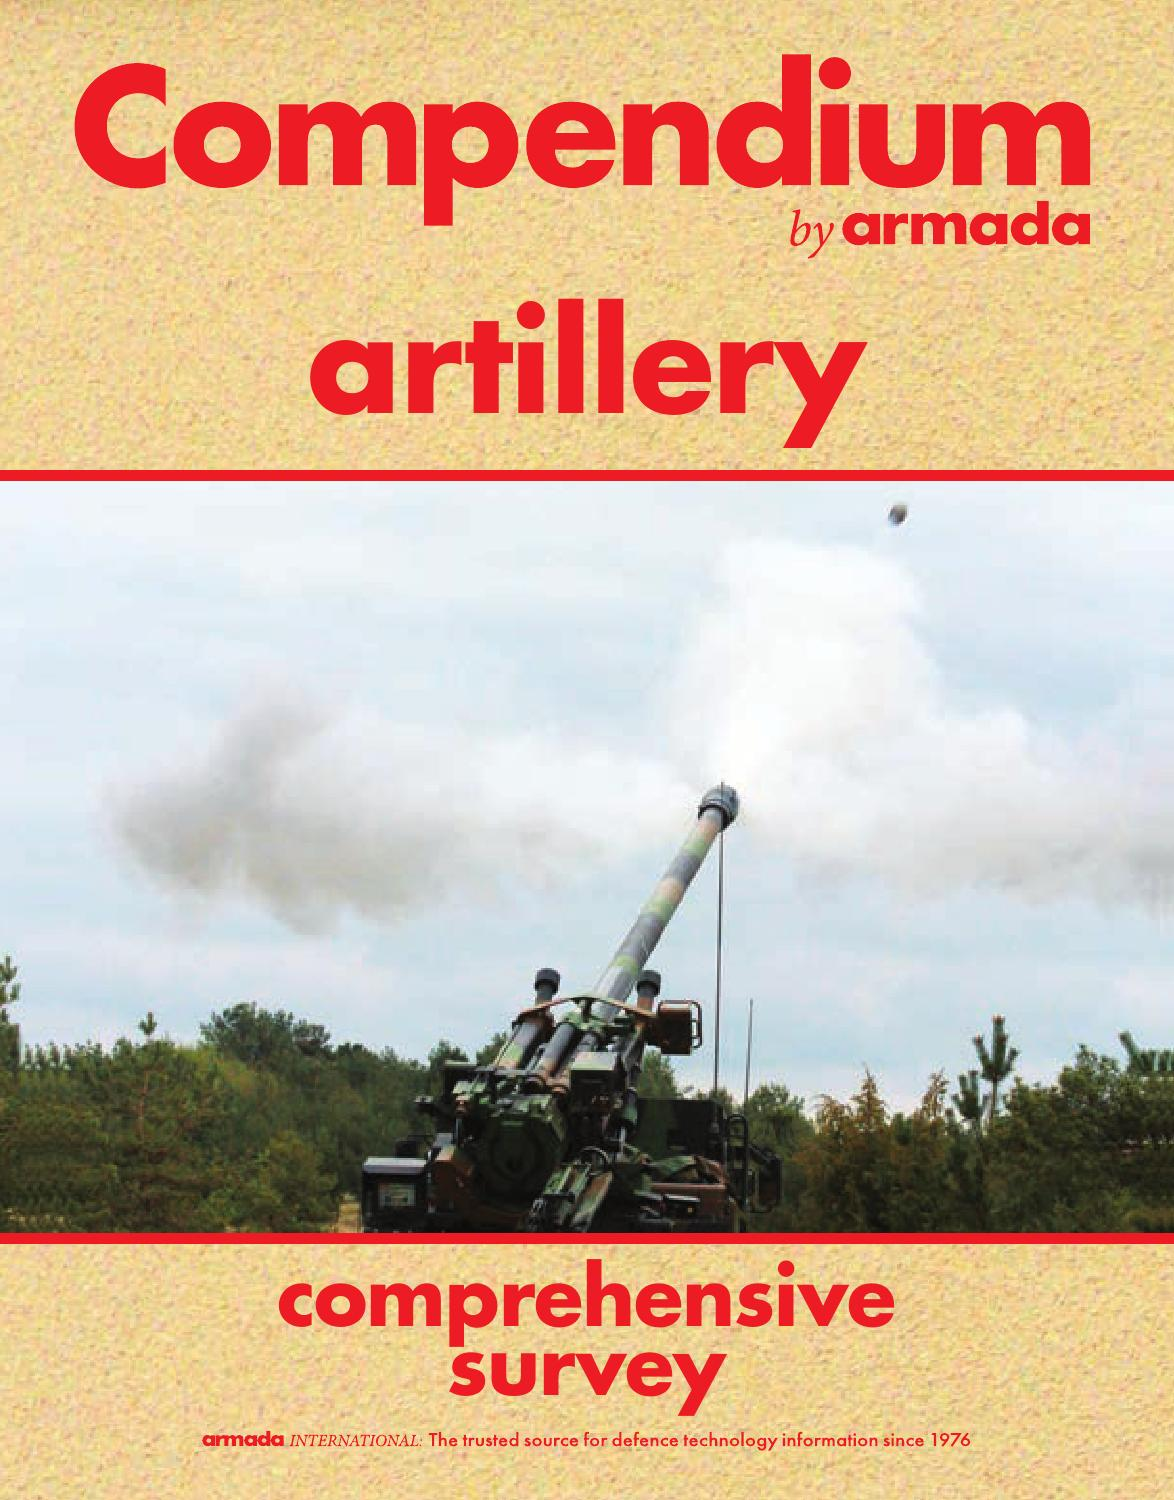 Artillery Compendium-Armada April-May 2015 by Armada International